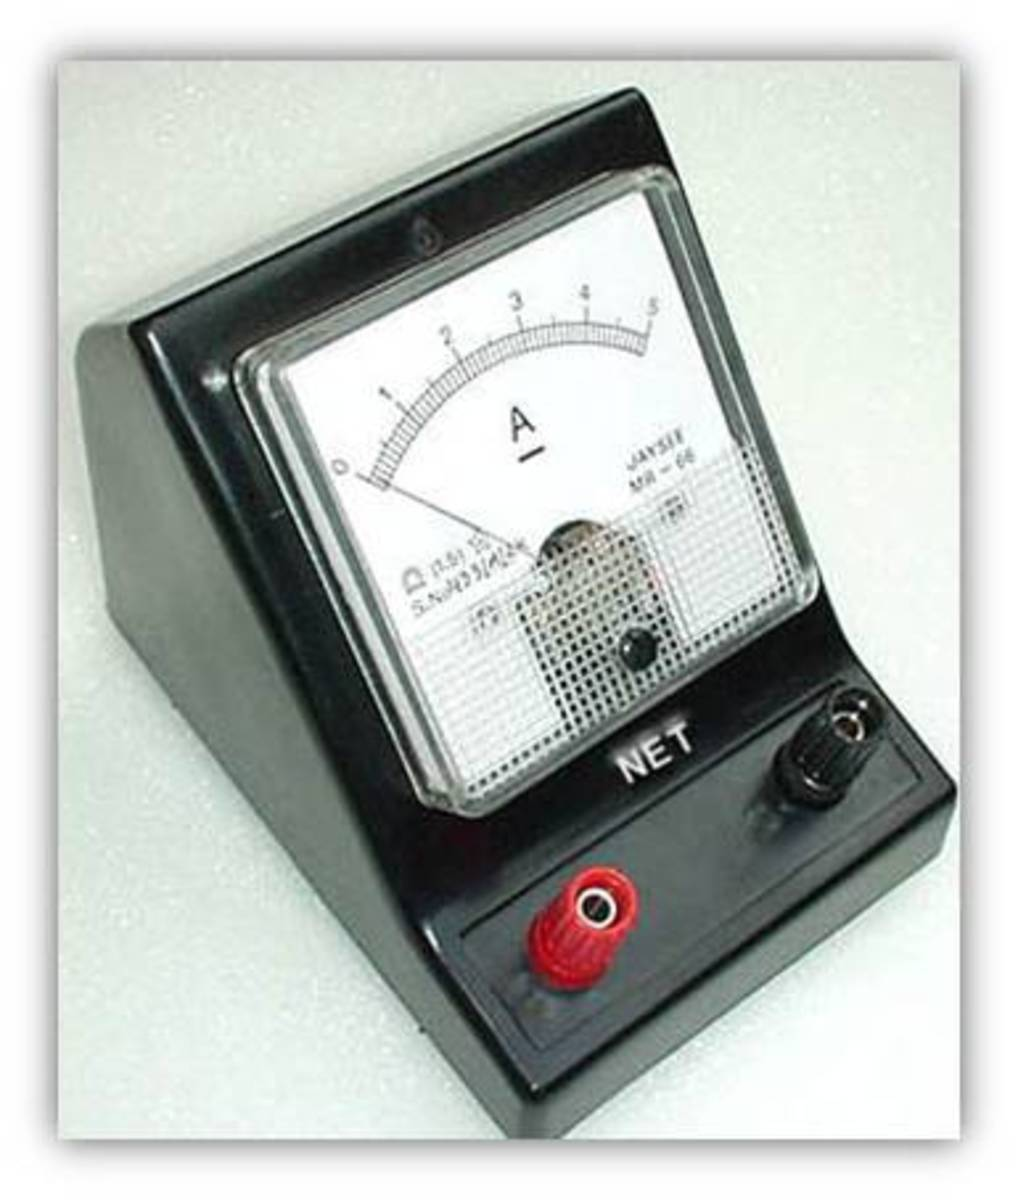 An ammeter is a measuring instrument used to measure the electric current in a circuit.